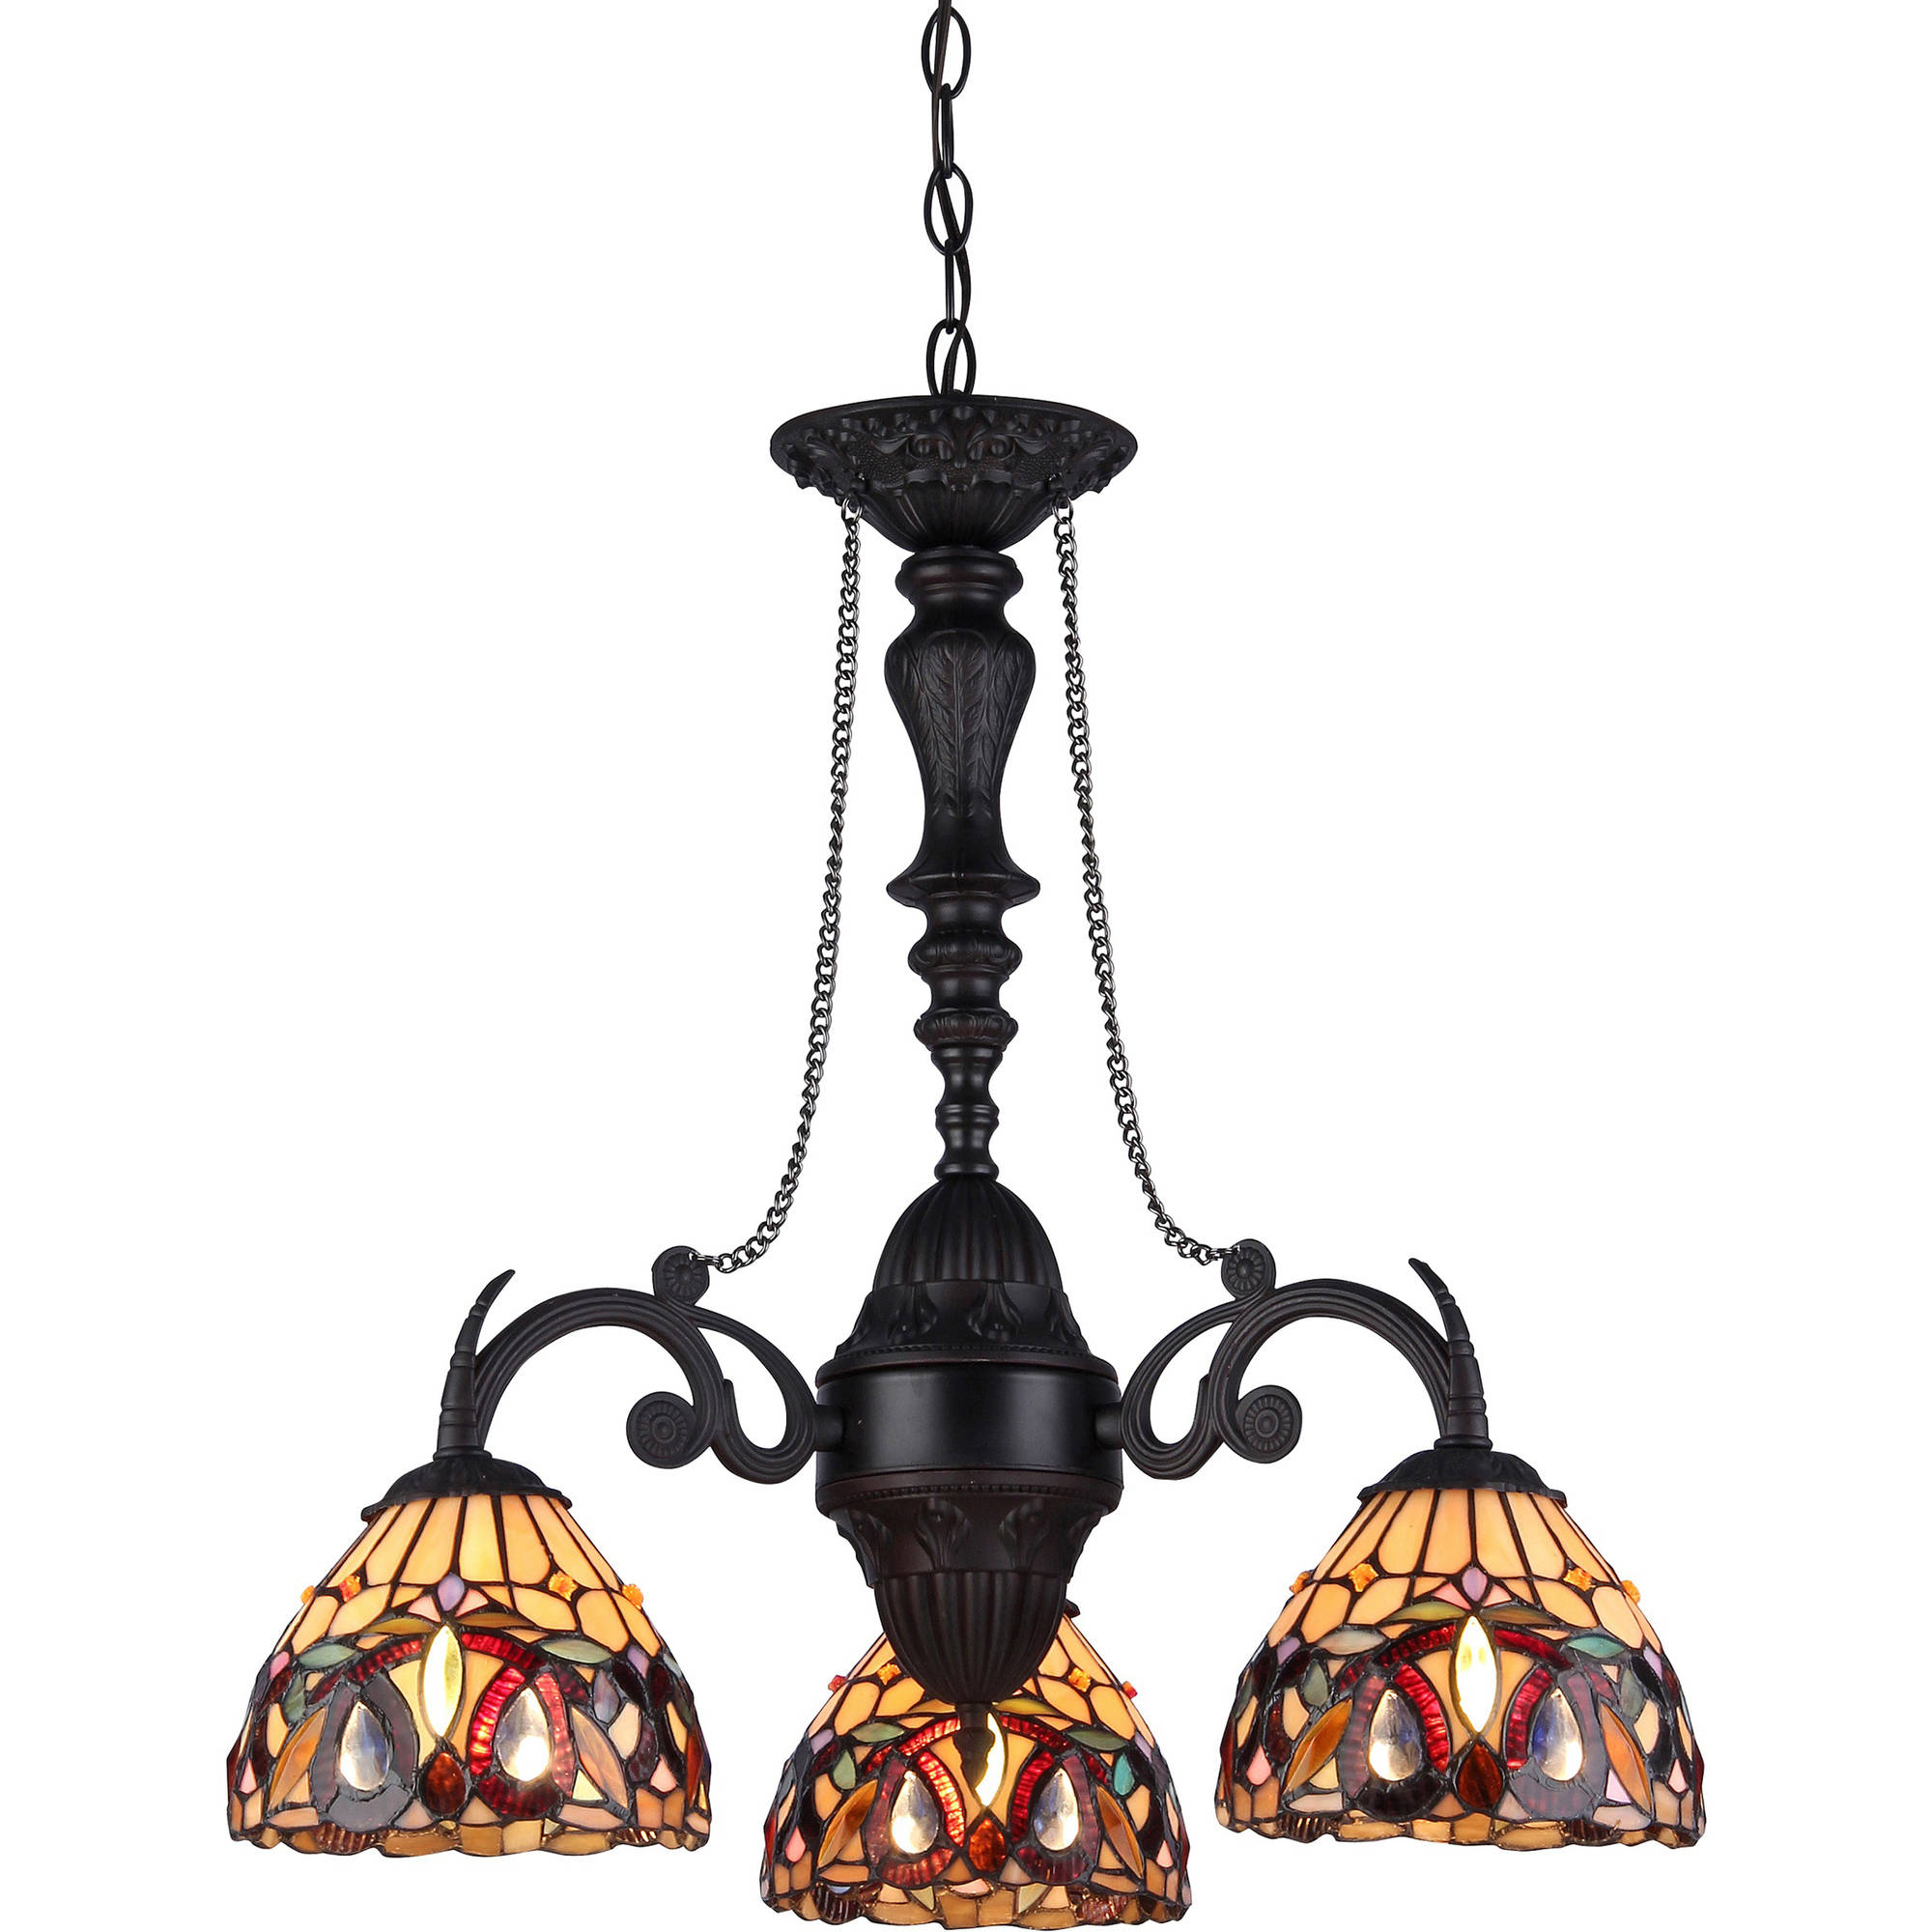 "Chloe Lighting Serenity Tiffany-Style 3-Light Victorian Mini Chandelier, 20.5"" Wide by Chloe Lighting"